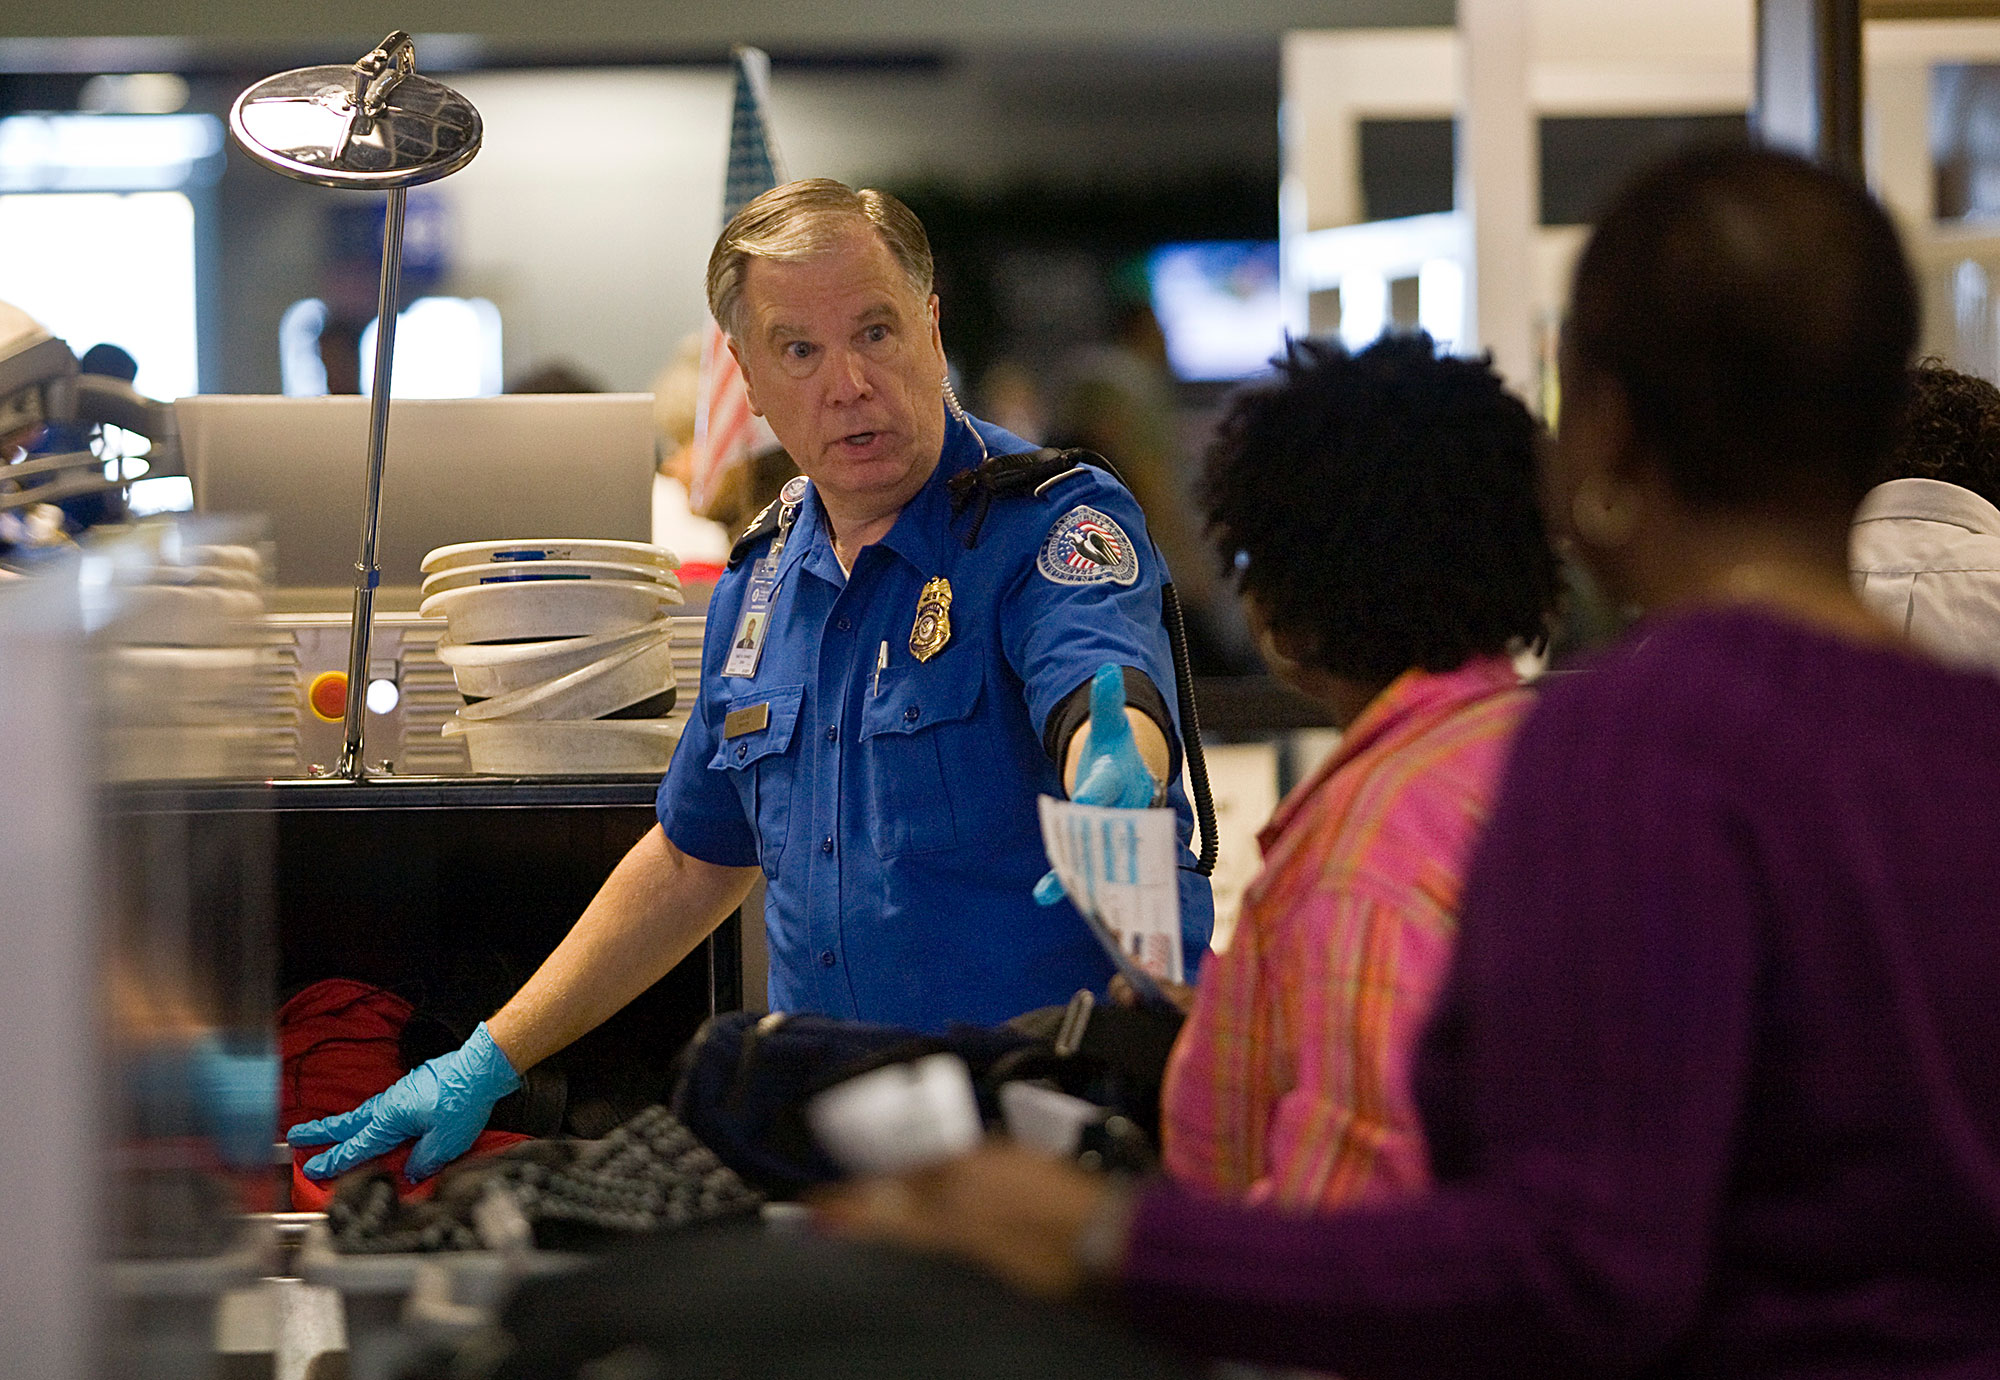 Yes, the TSA Can Unwrap Your Christmas Presents: How to Prevent This and More Travel Nightmares